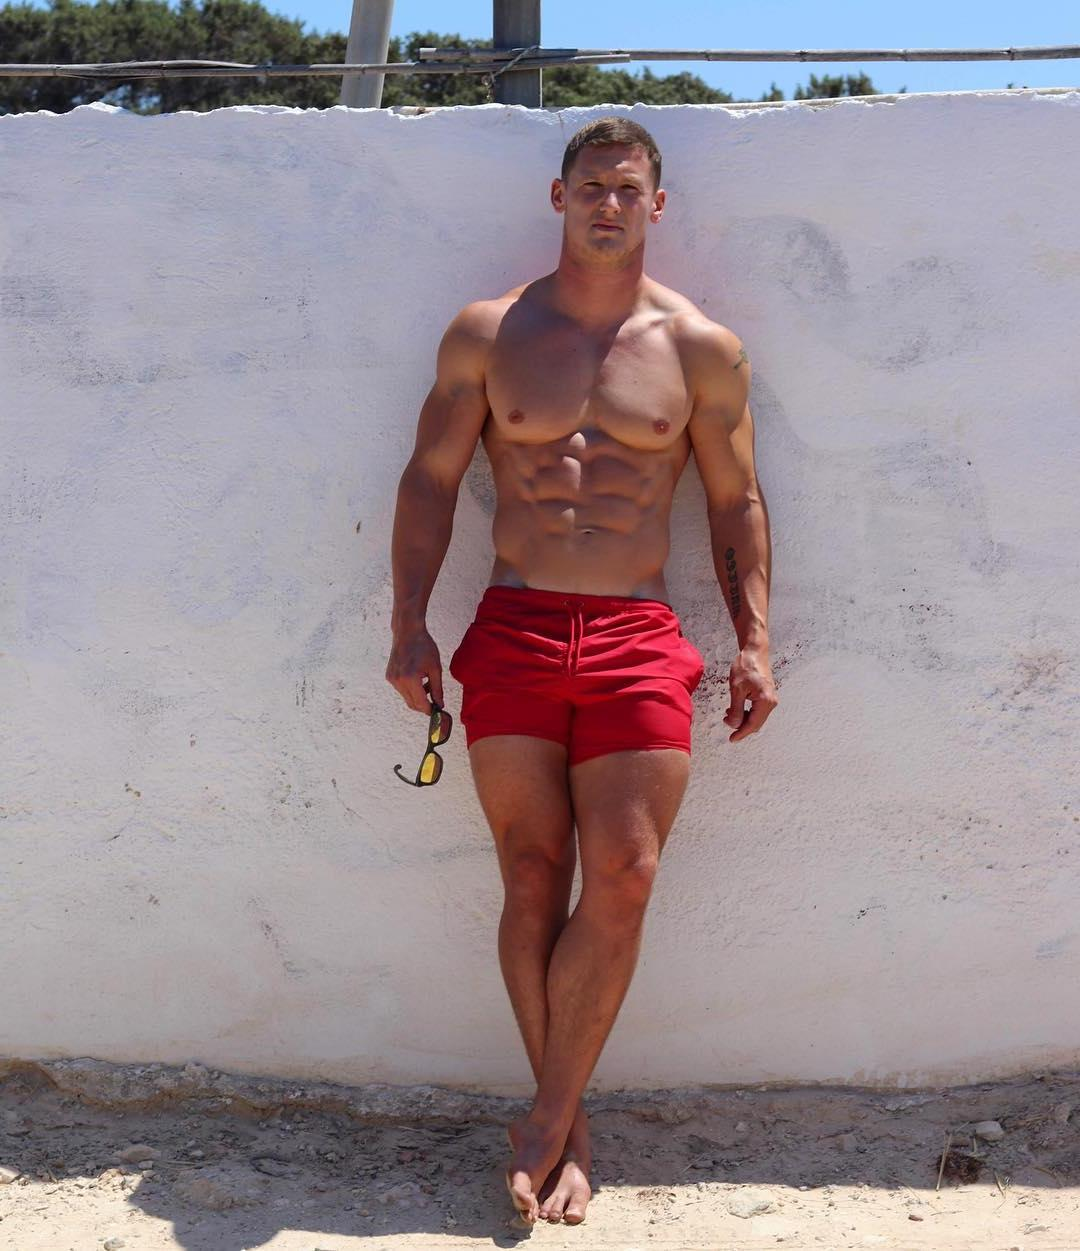 shirtless-beefcake-daddy-sunny-body-red-shorts-huge-pecs-muscle-dilf-abs